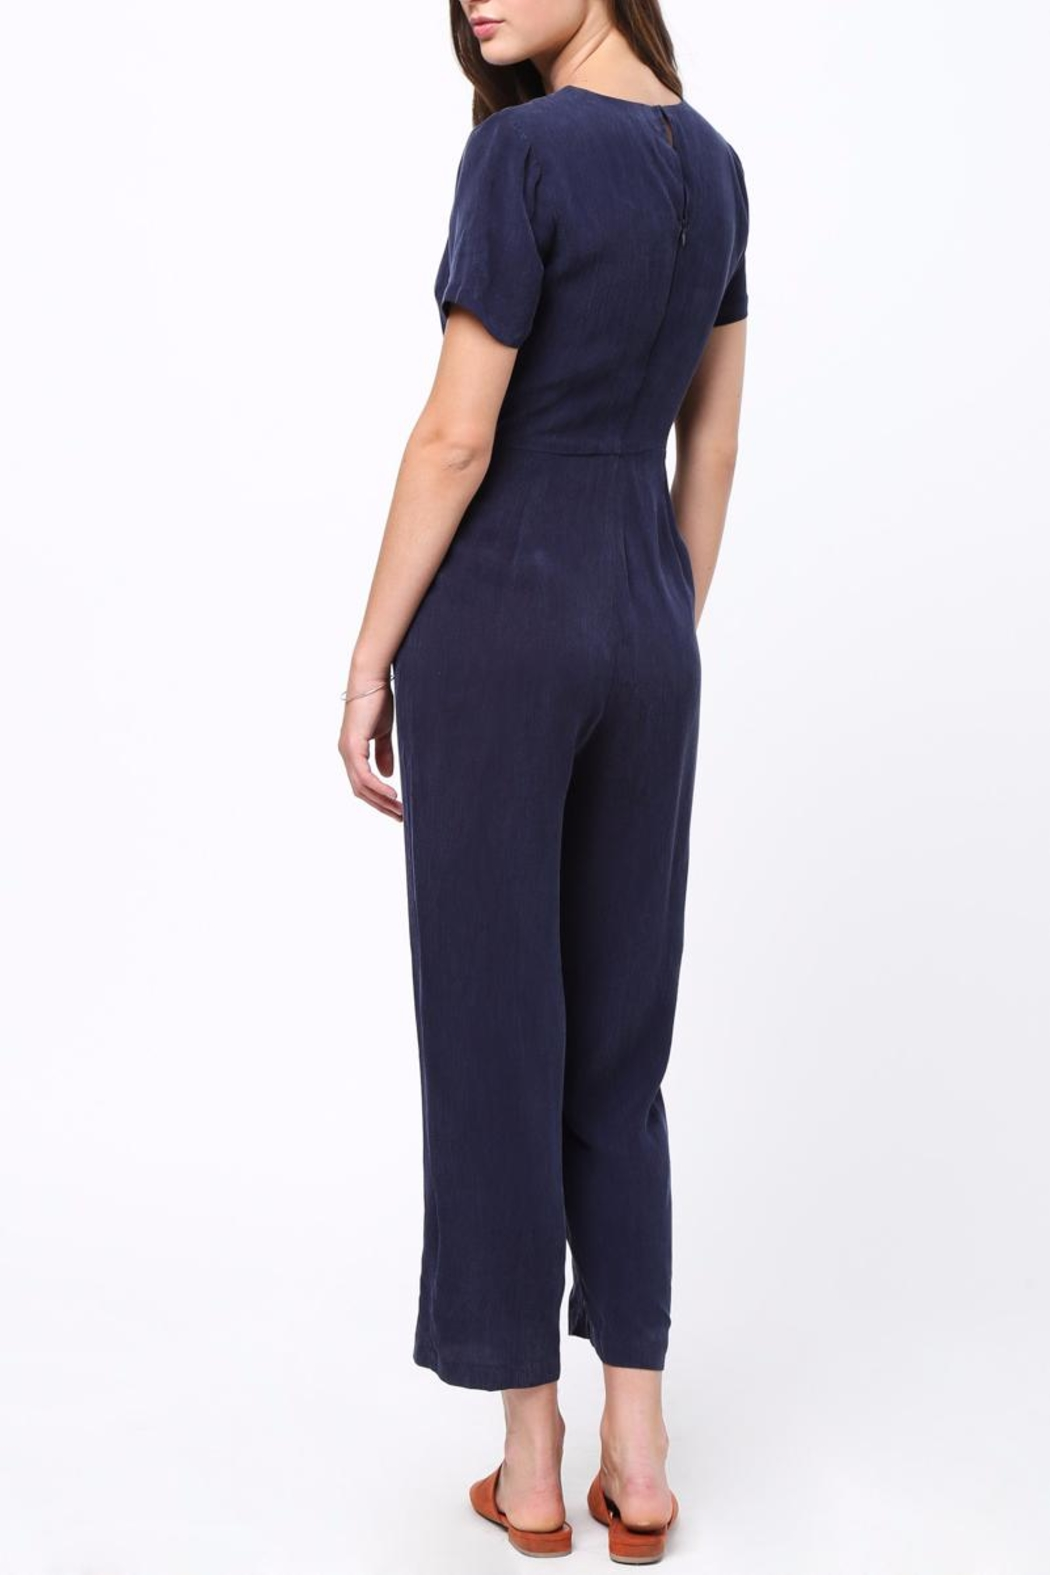 Movint Front Tie Detailed Jumpsuit - Front Full Image